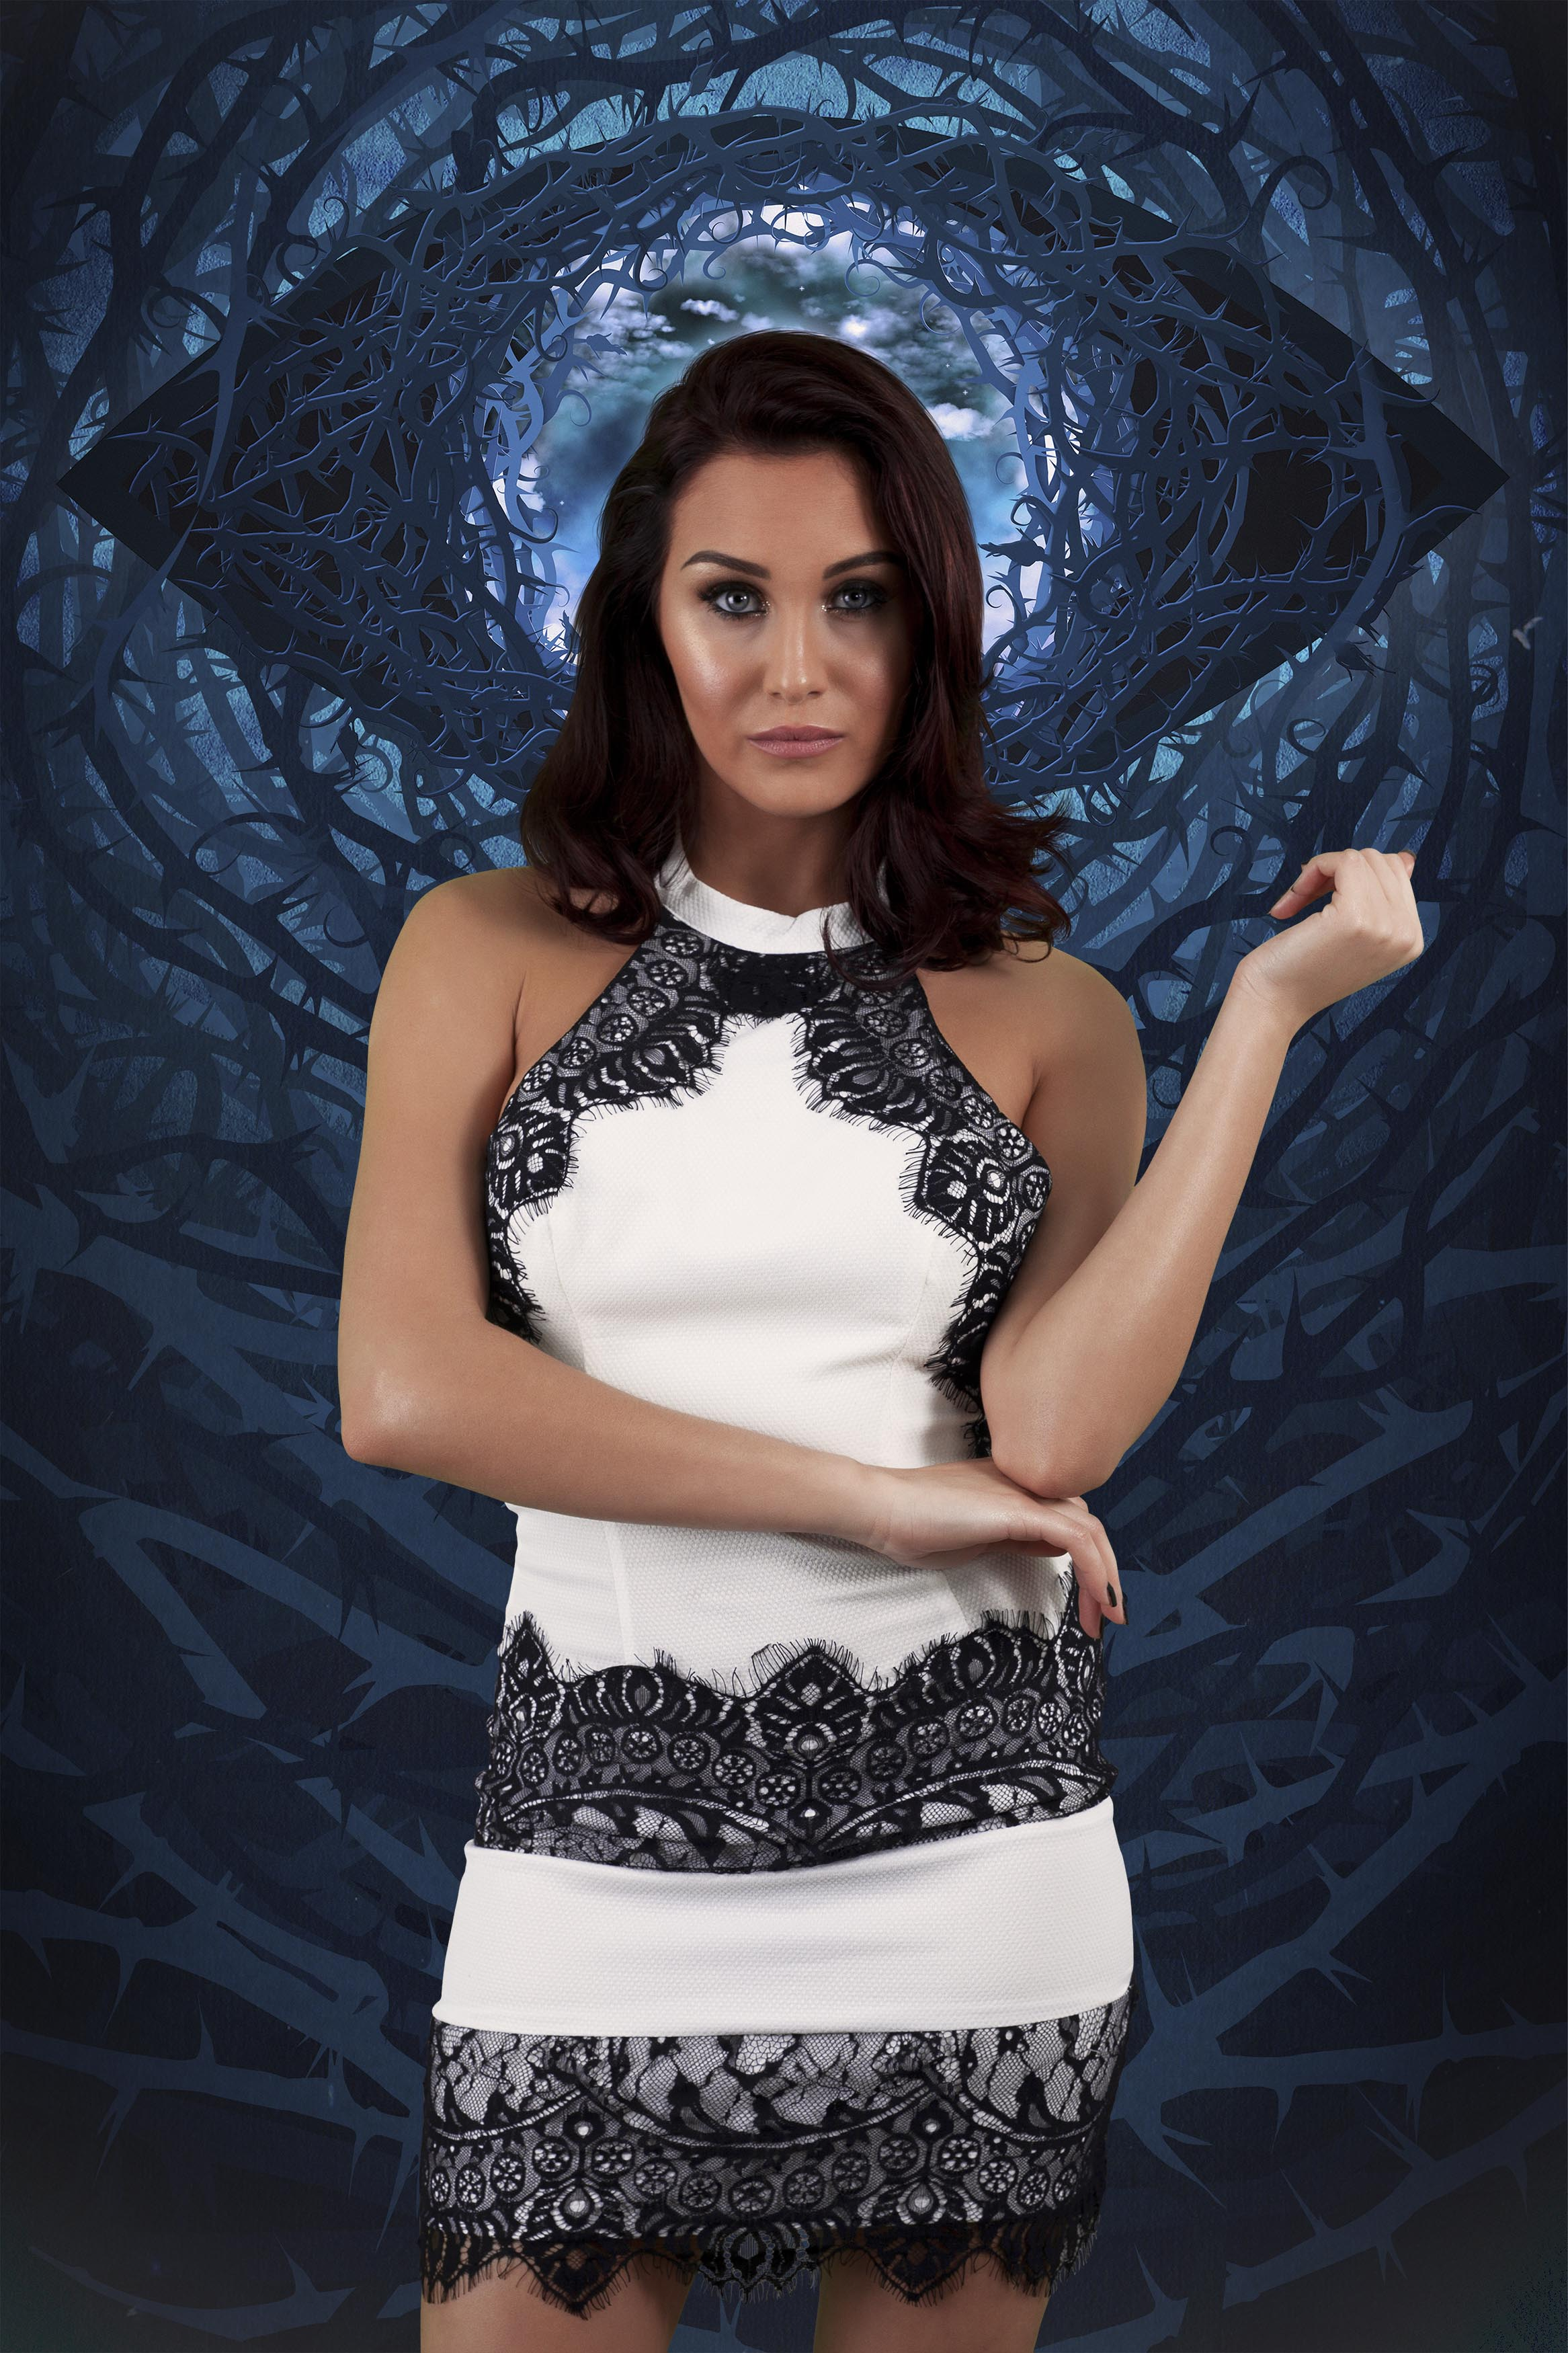 Chloe Goodman is evicted from Celebrity Big Brother